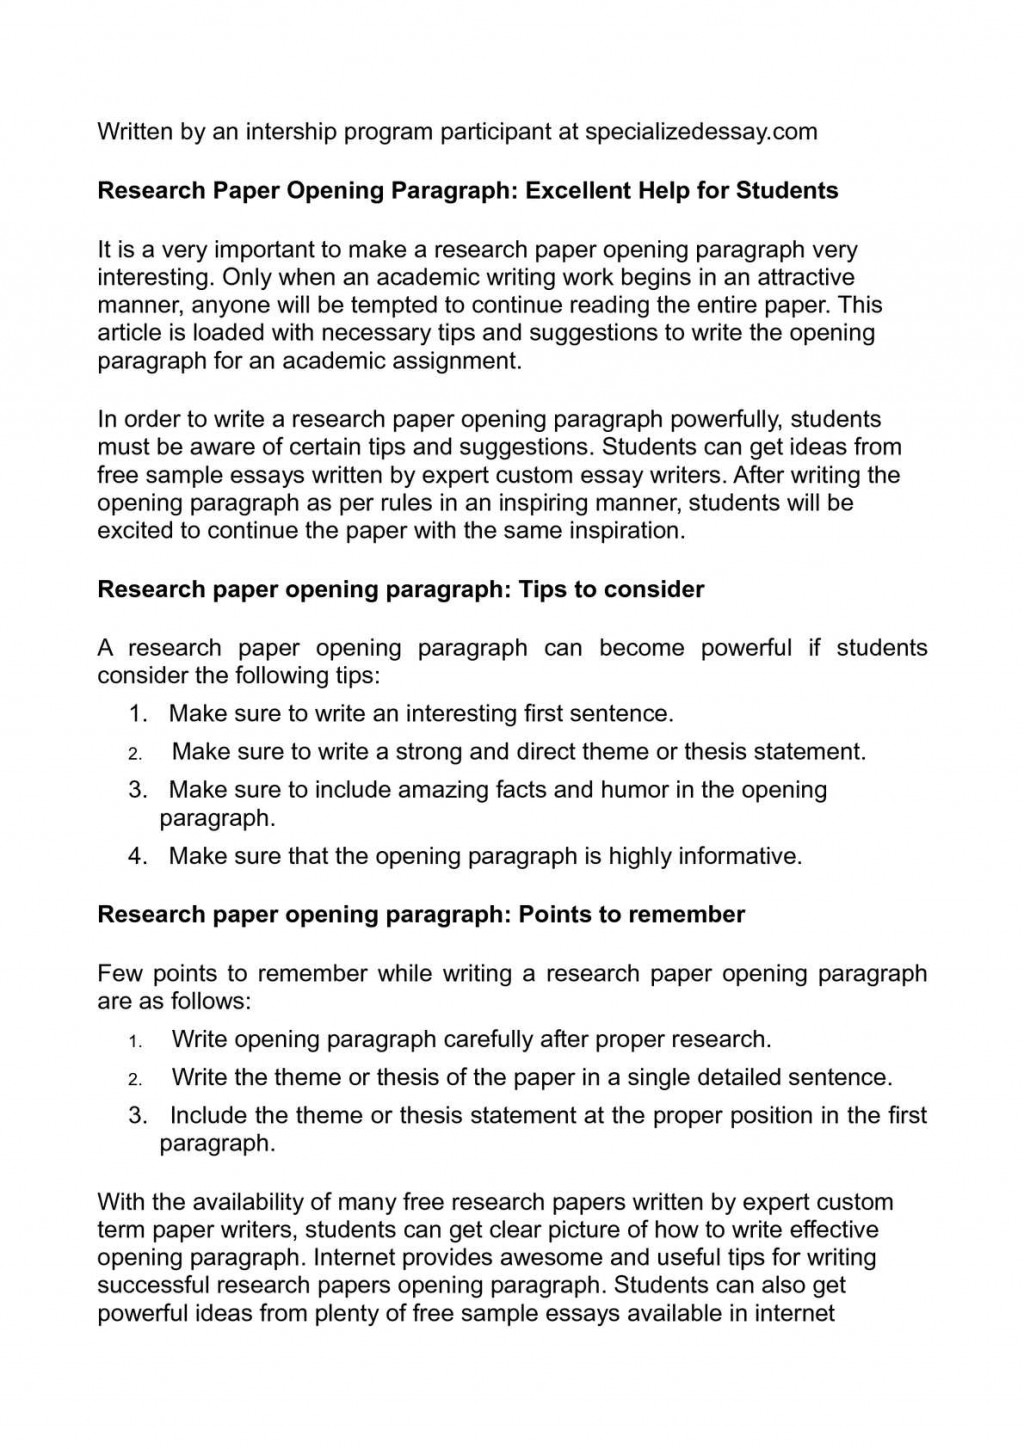 017 Cool Topics To Do Research Paper On Impressive A Interesting For Medical Of In Computer Science Economic Large